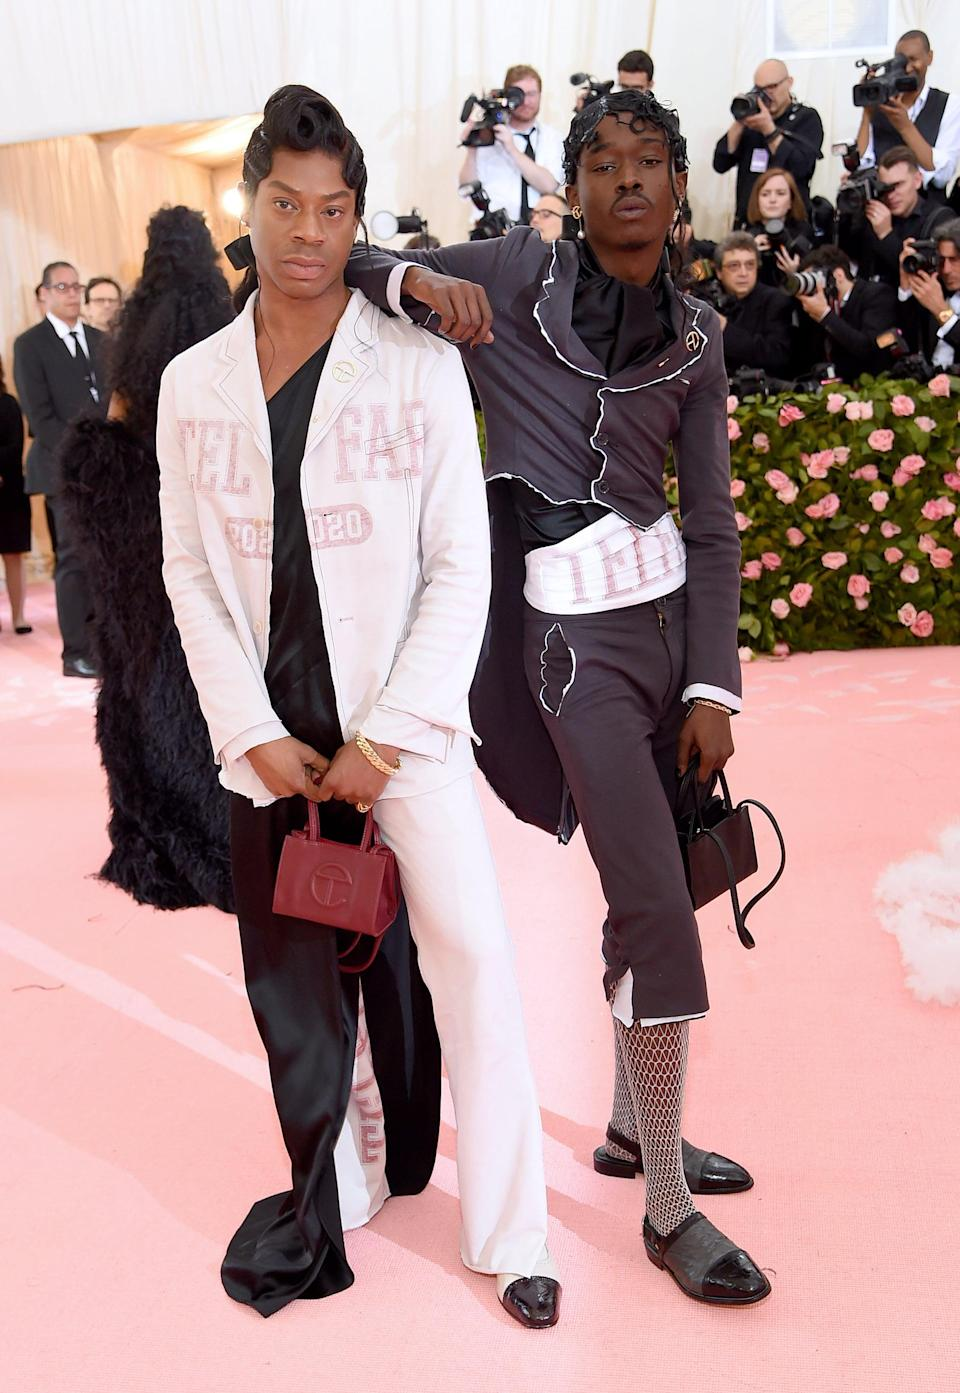 NEW YORK, NEW YORK - MAY 06:   Telfar Clemens and Ashton Sanders attend The 2019 Met Gala Celebrating Camp: Notes on Fashion at Metropolitan Museum of Art on May 06, 2019 in New York City. (Photo by Jamie McCarthy/Getty Images)